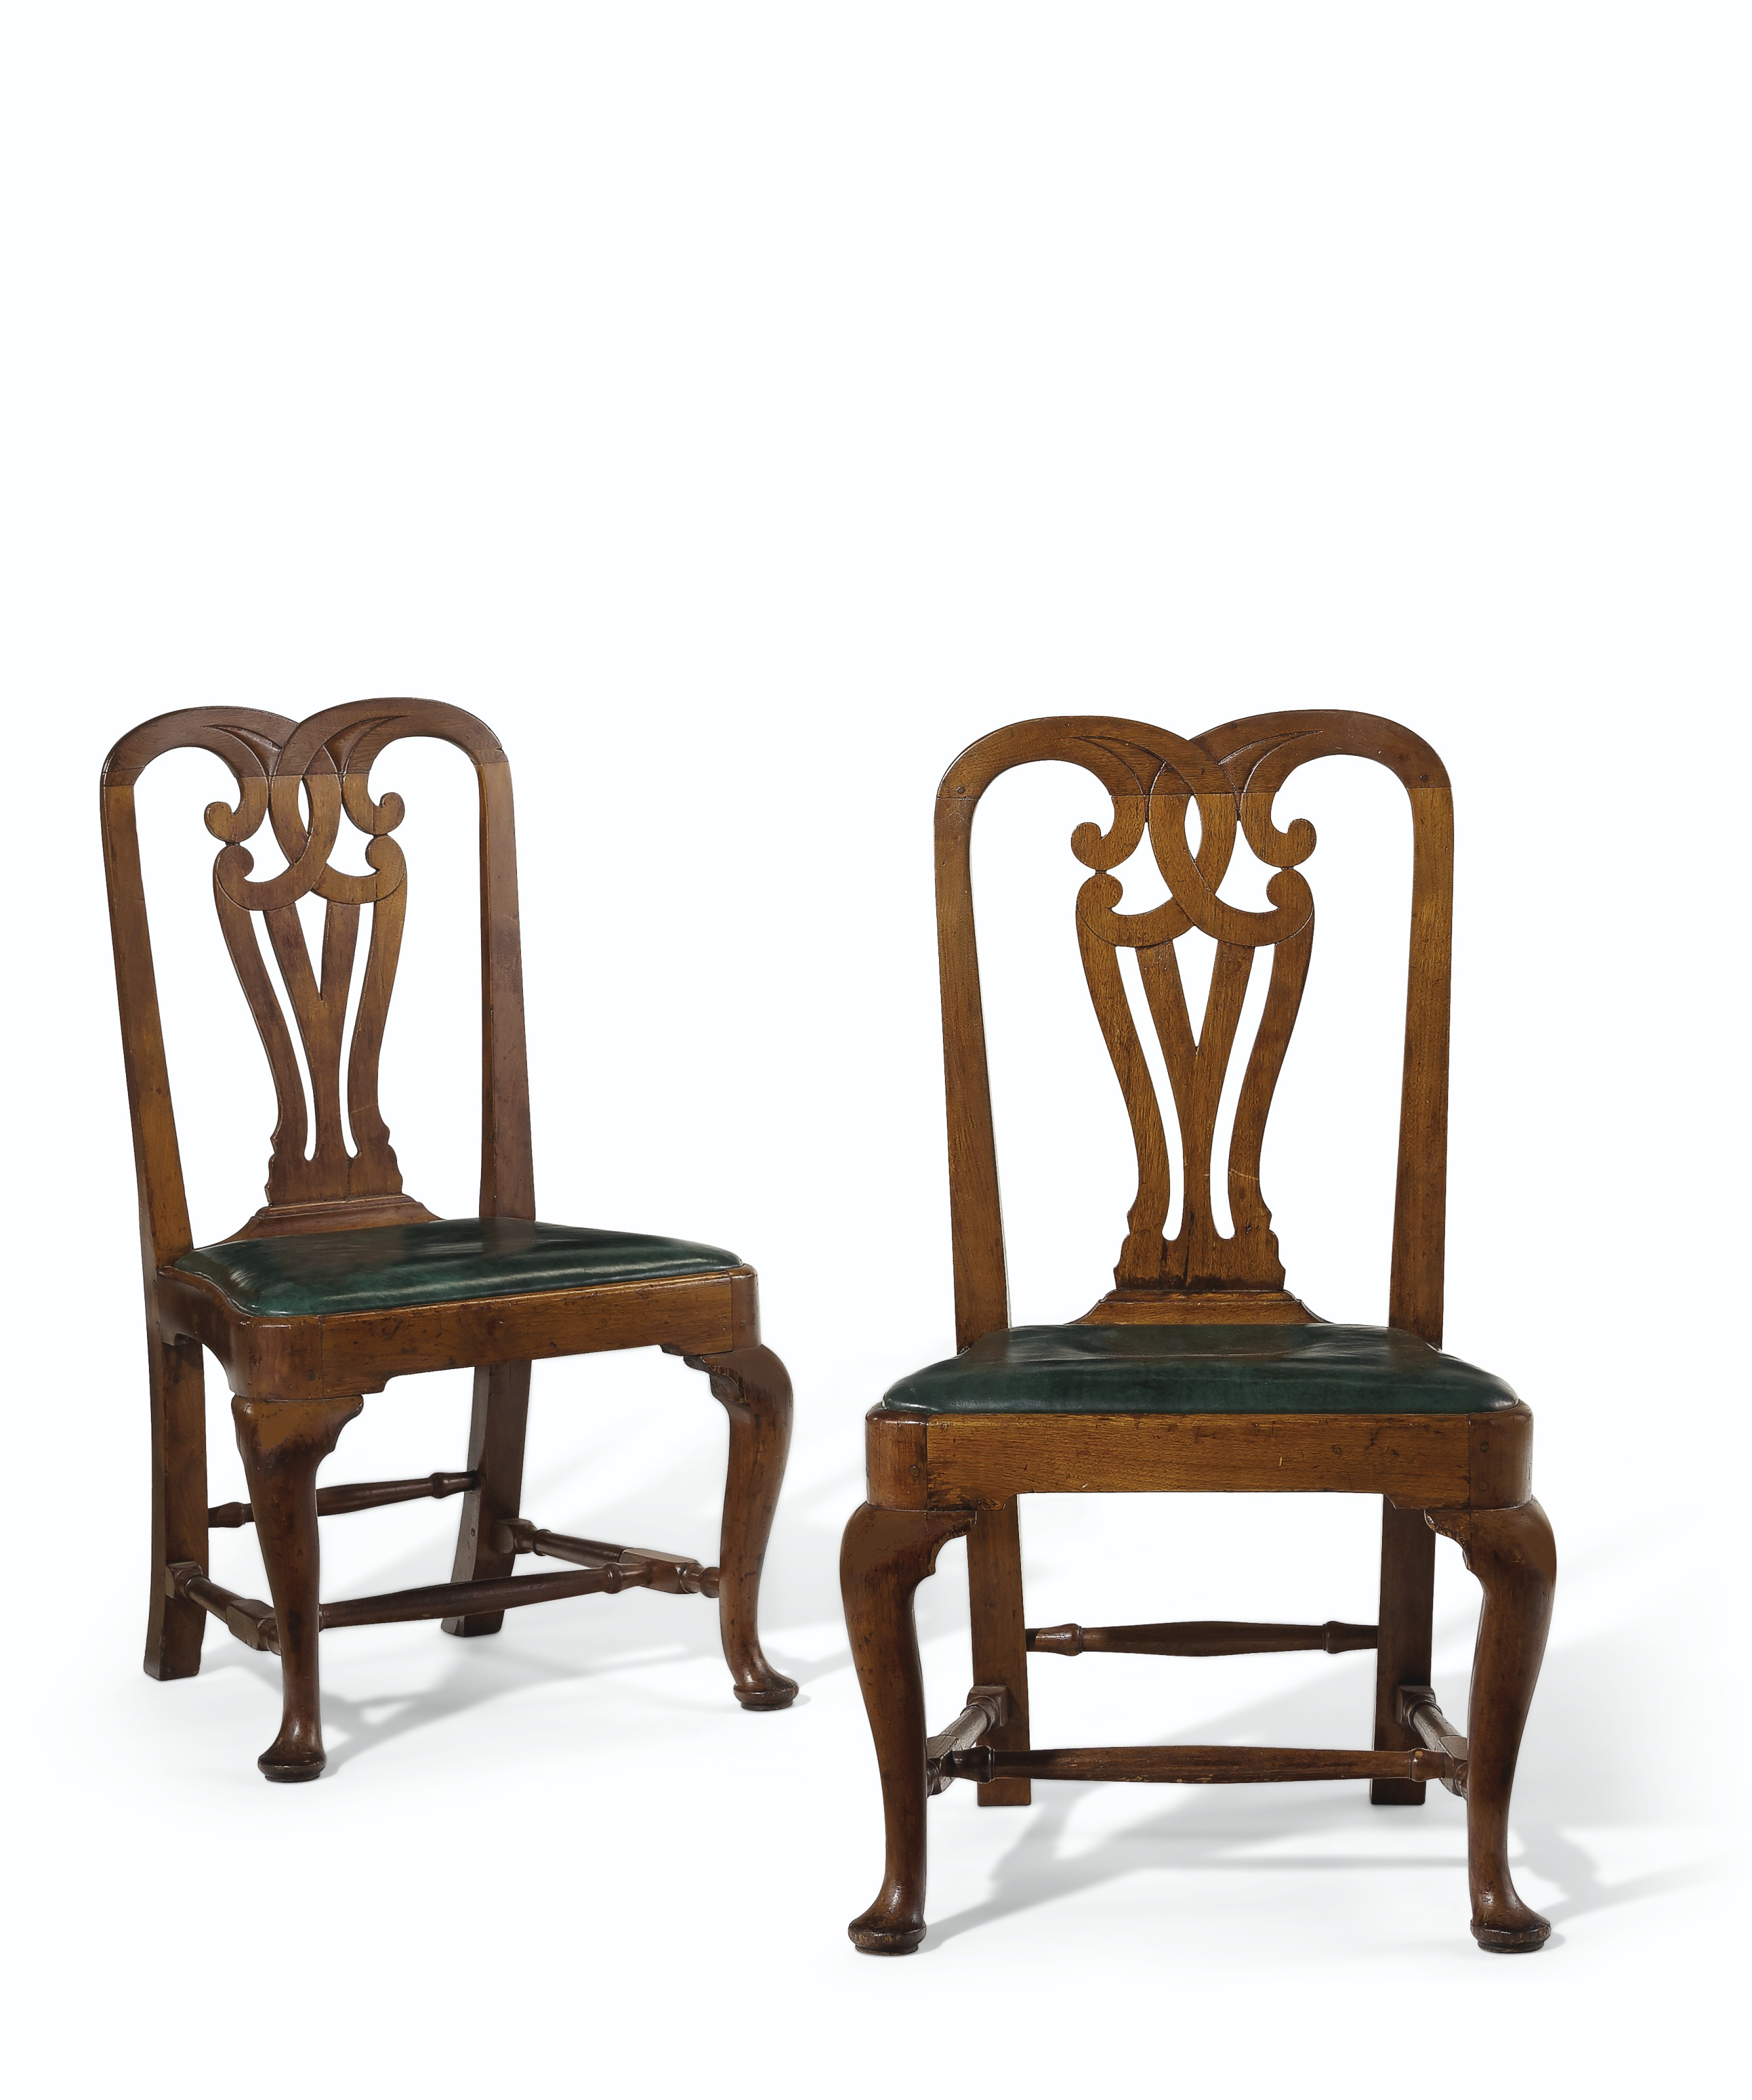 THE TILLINGHAST FAMILY PAIR OF QUEEN ANNE WALNUT SIDE CHAIRS